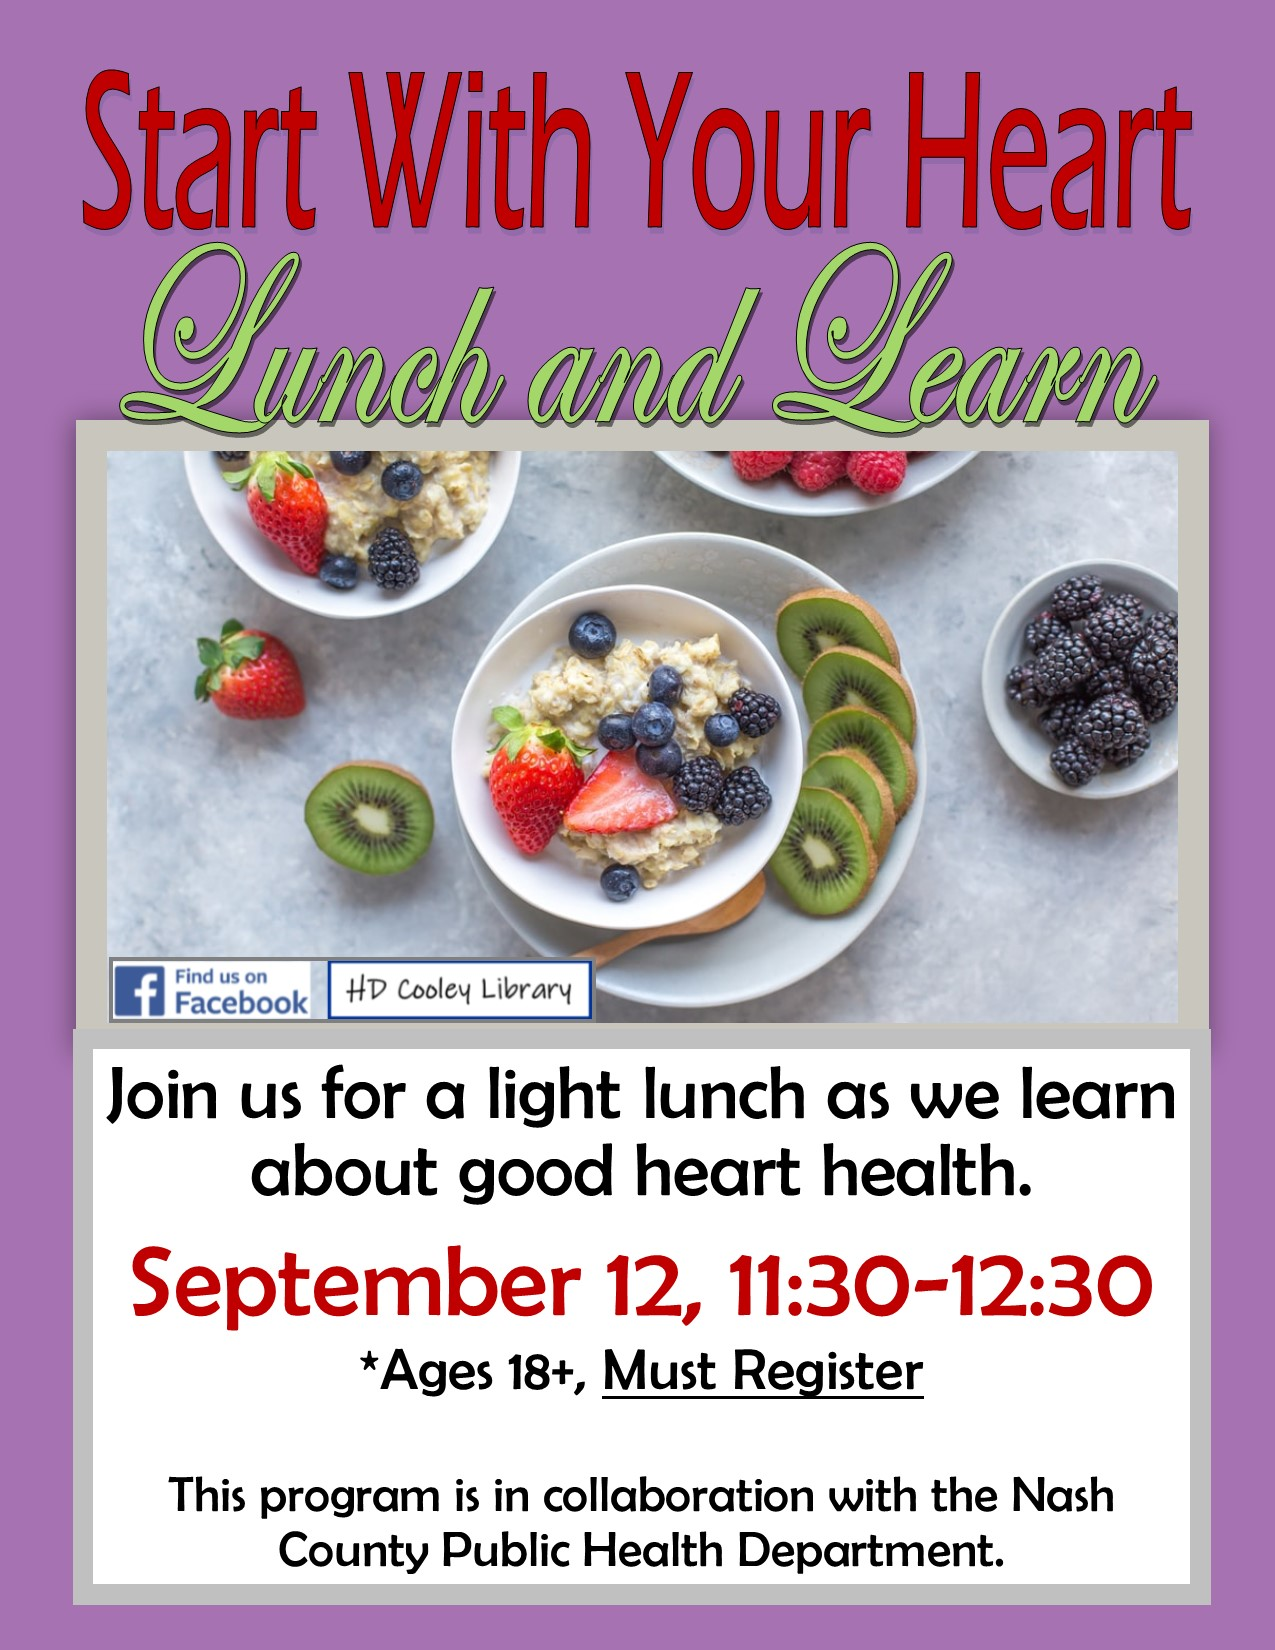 Heart Health Lunch and Learn date and time